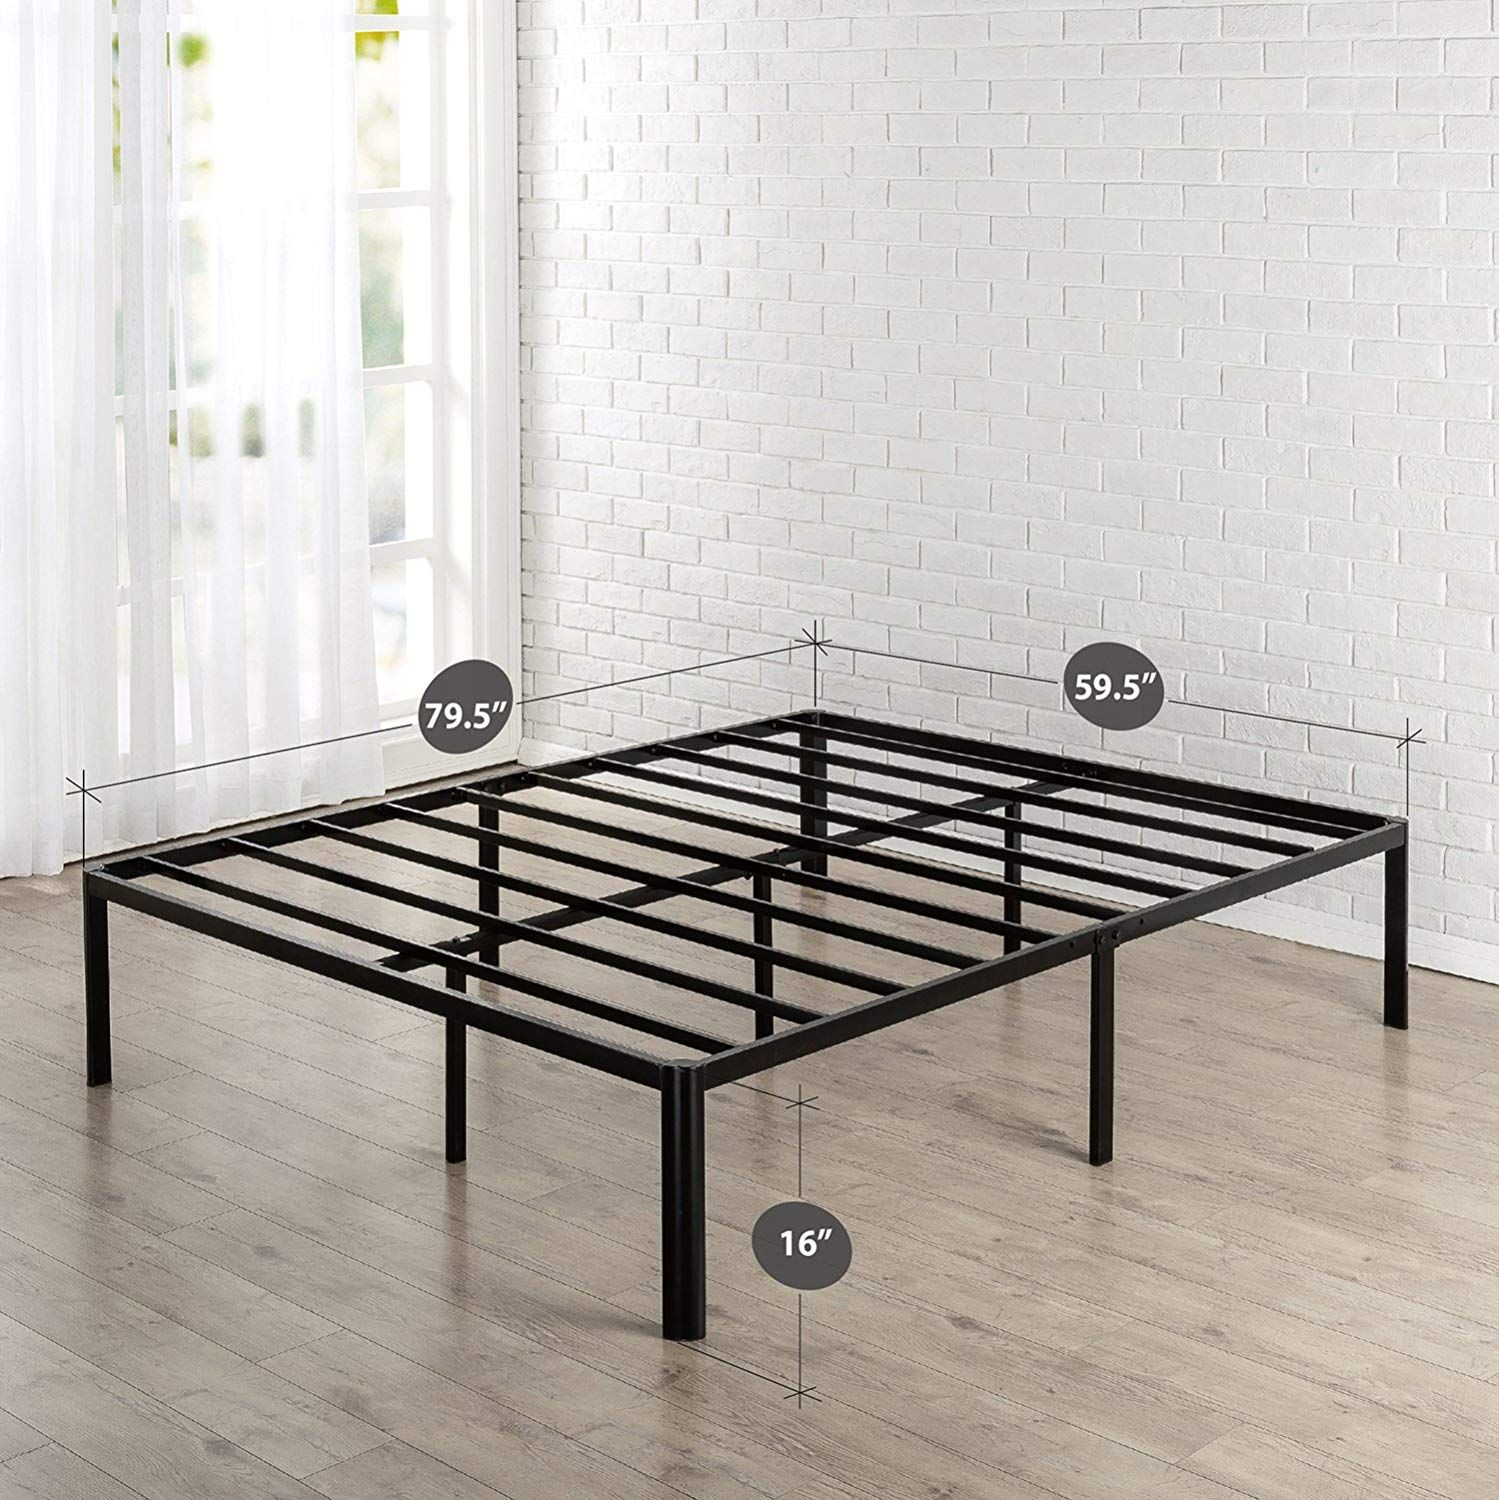 Amazon Com Zinus Van 16 Inch Metal Platform Bed Frame With Steel Slat Support Mattress Foundation Metal Platform Bed Platform Bed Frame Bed Frame Mattress